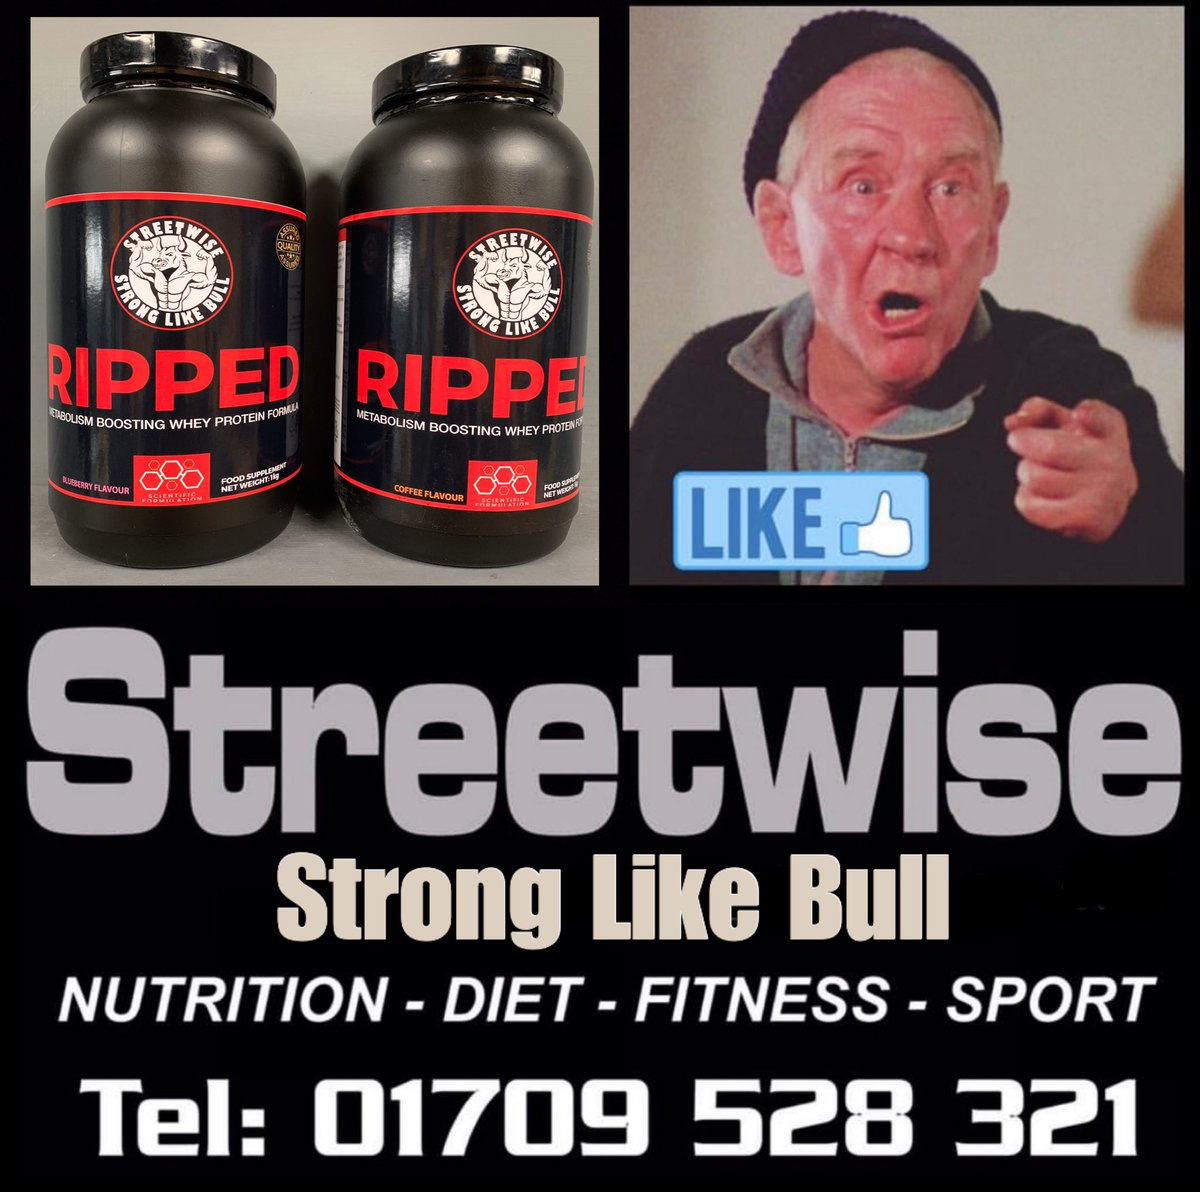 We have nailed it with RIPPED. QUALITY, MIX and TASTE #streetwise  #streetwisecrew  #stronglikebull  #fitfam  #fitness  #hardcore  #lovelife  #livetothemax  #supplements  #nutrition  #trainhard